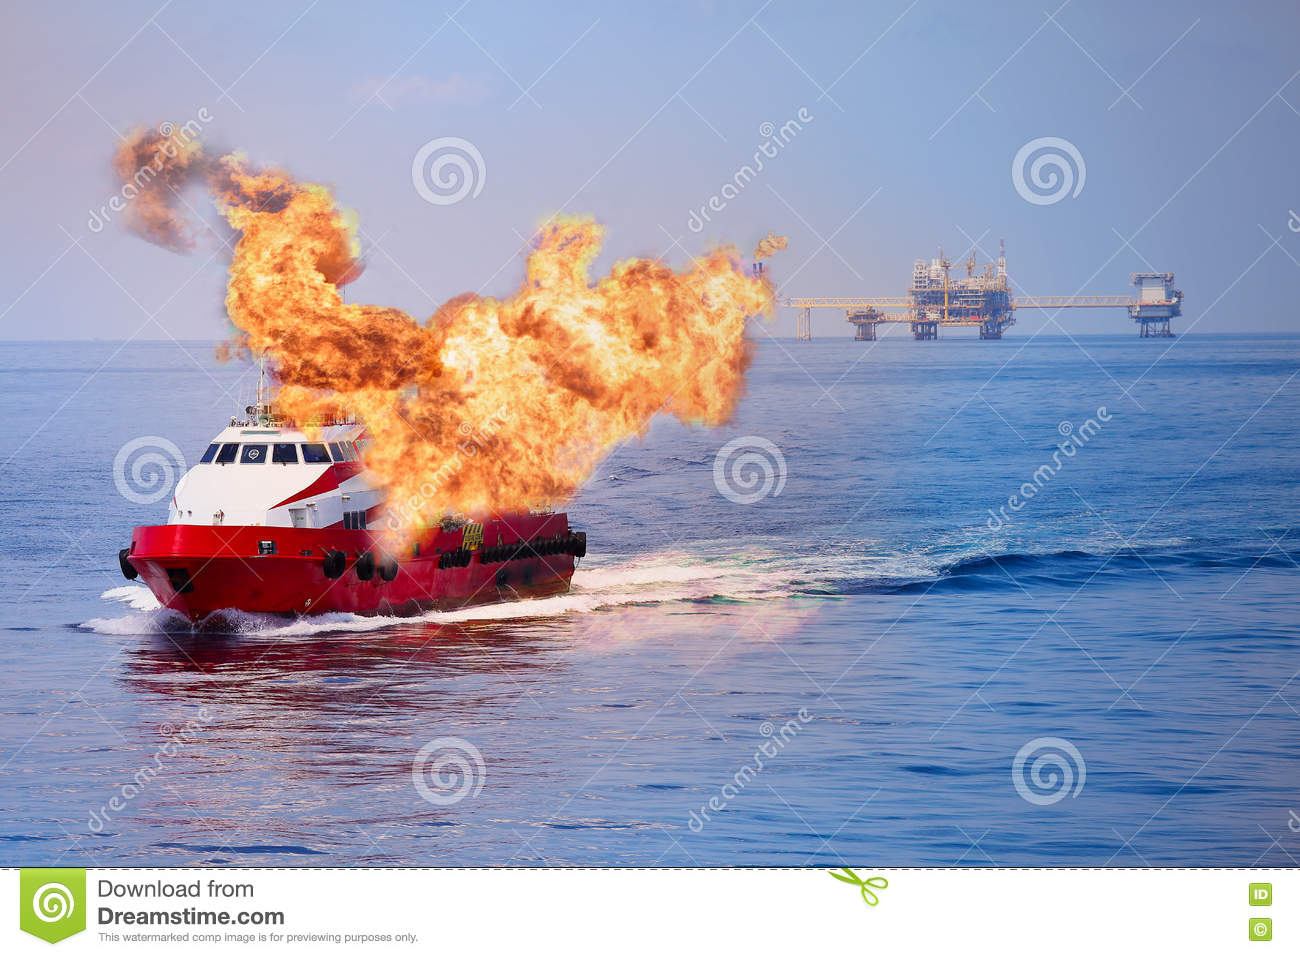 Fire Burning On The Boat In Offshore Oil And Gas Industry